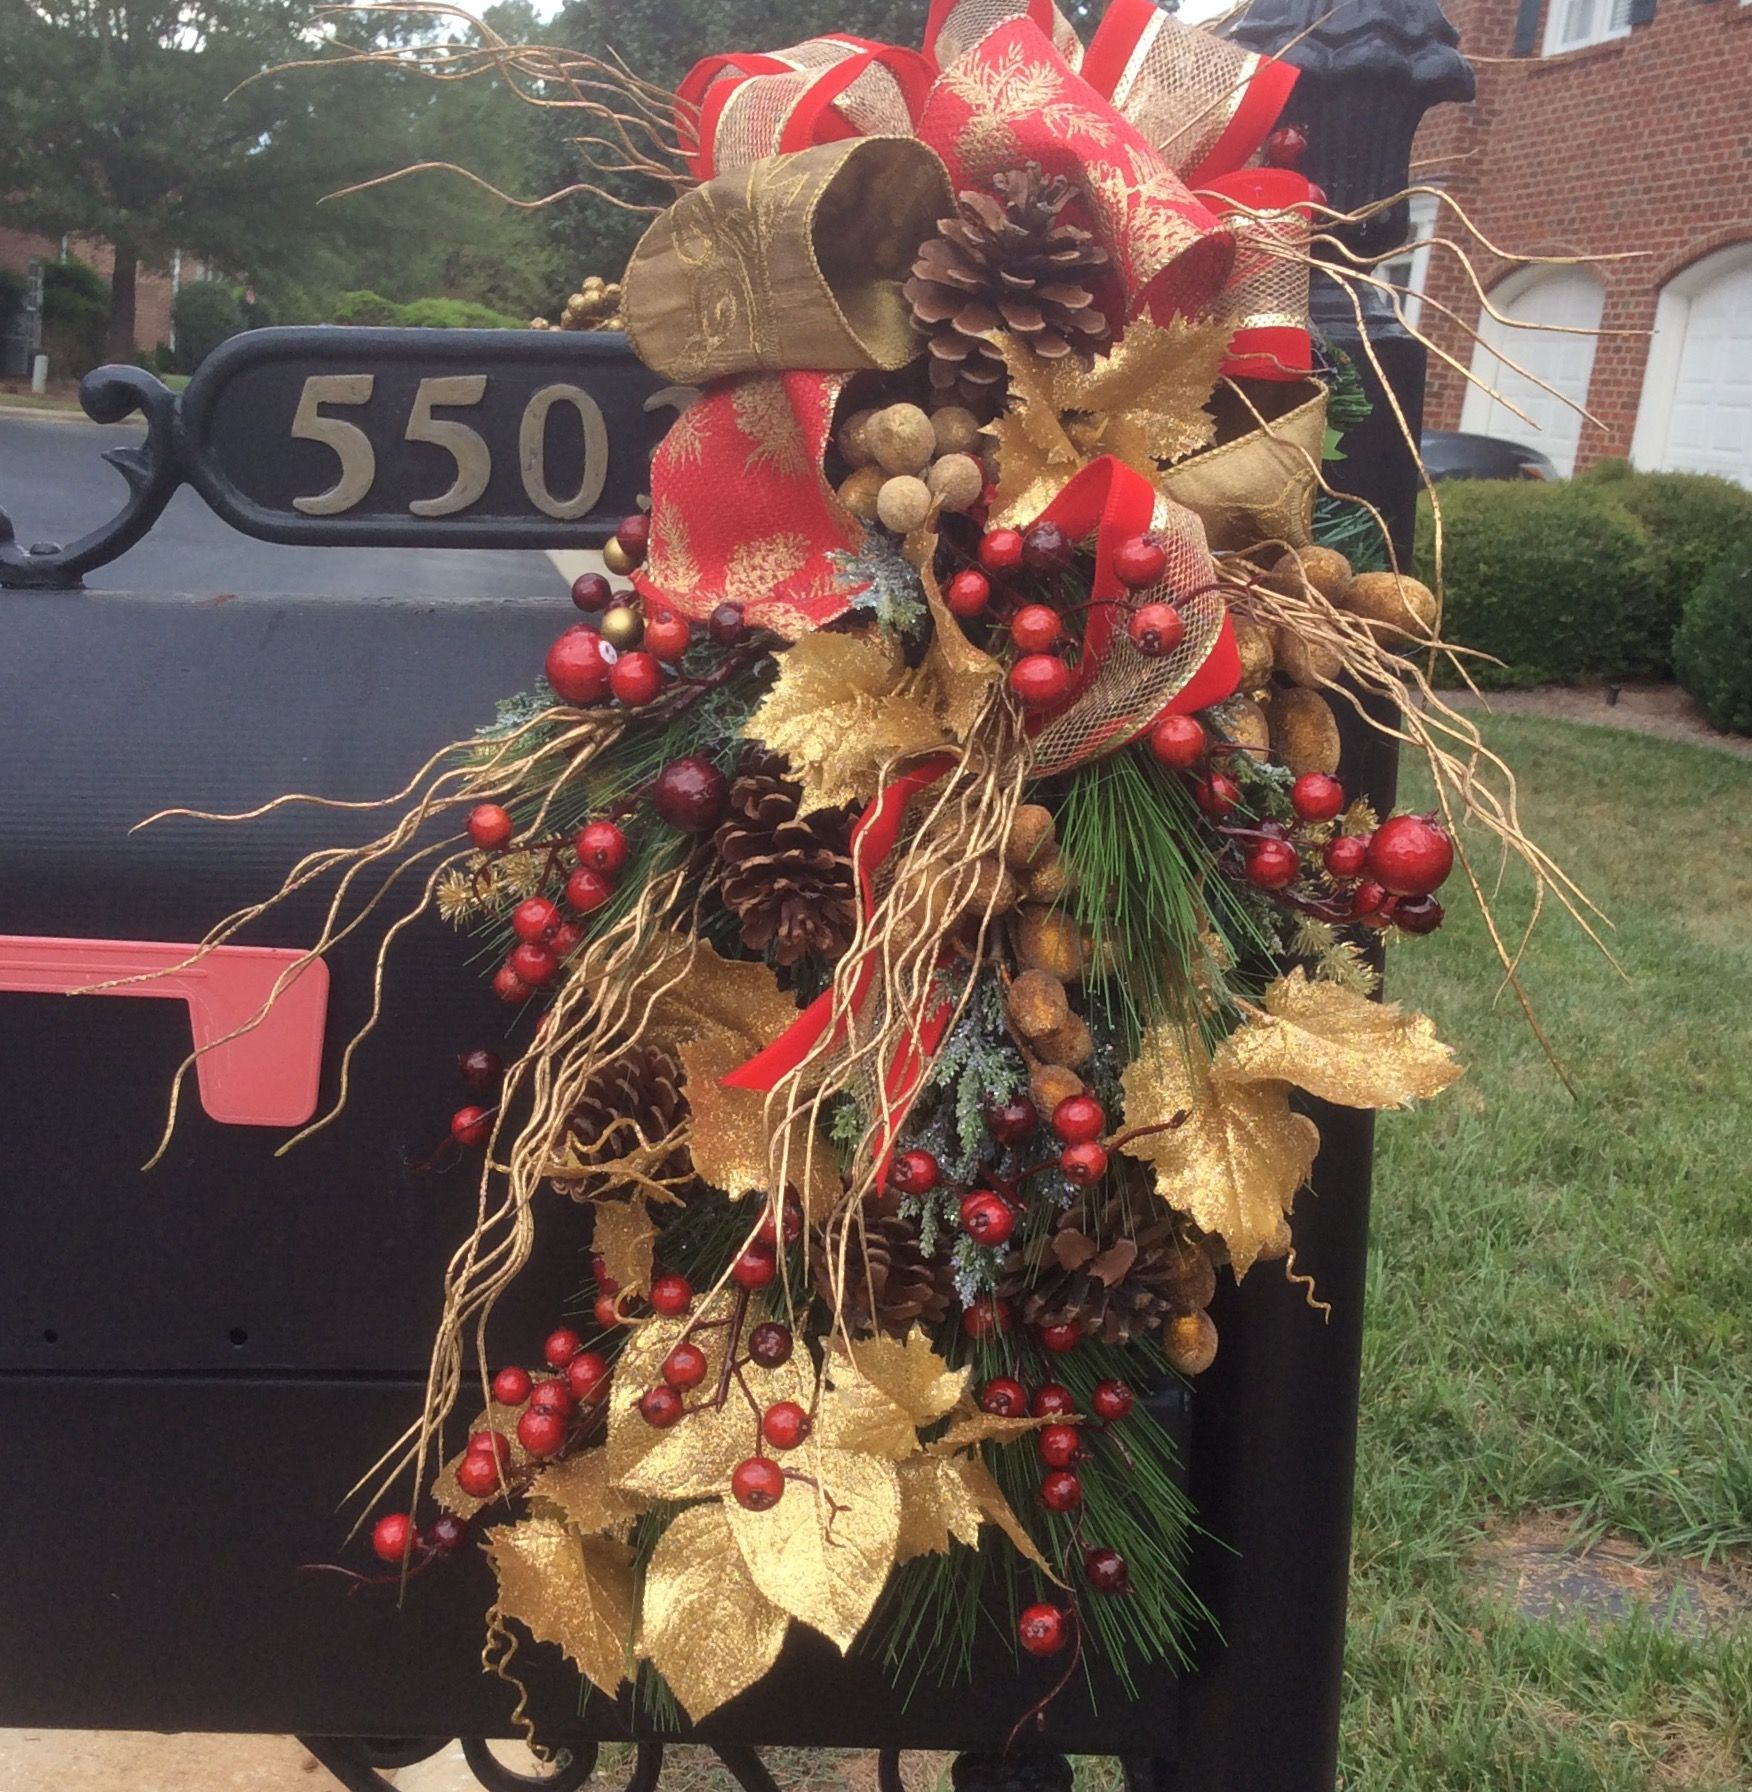 ornaments and curb christmas by decorating your increase bows pin mailbox s ornament decorations decor appeal home with greenery